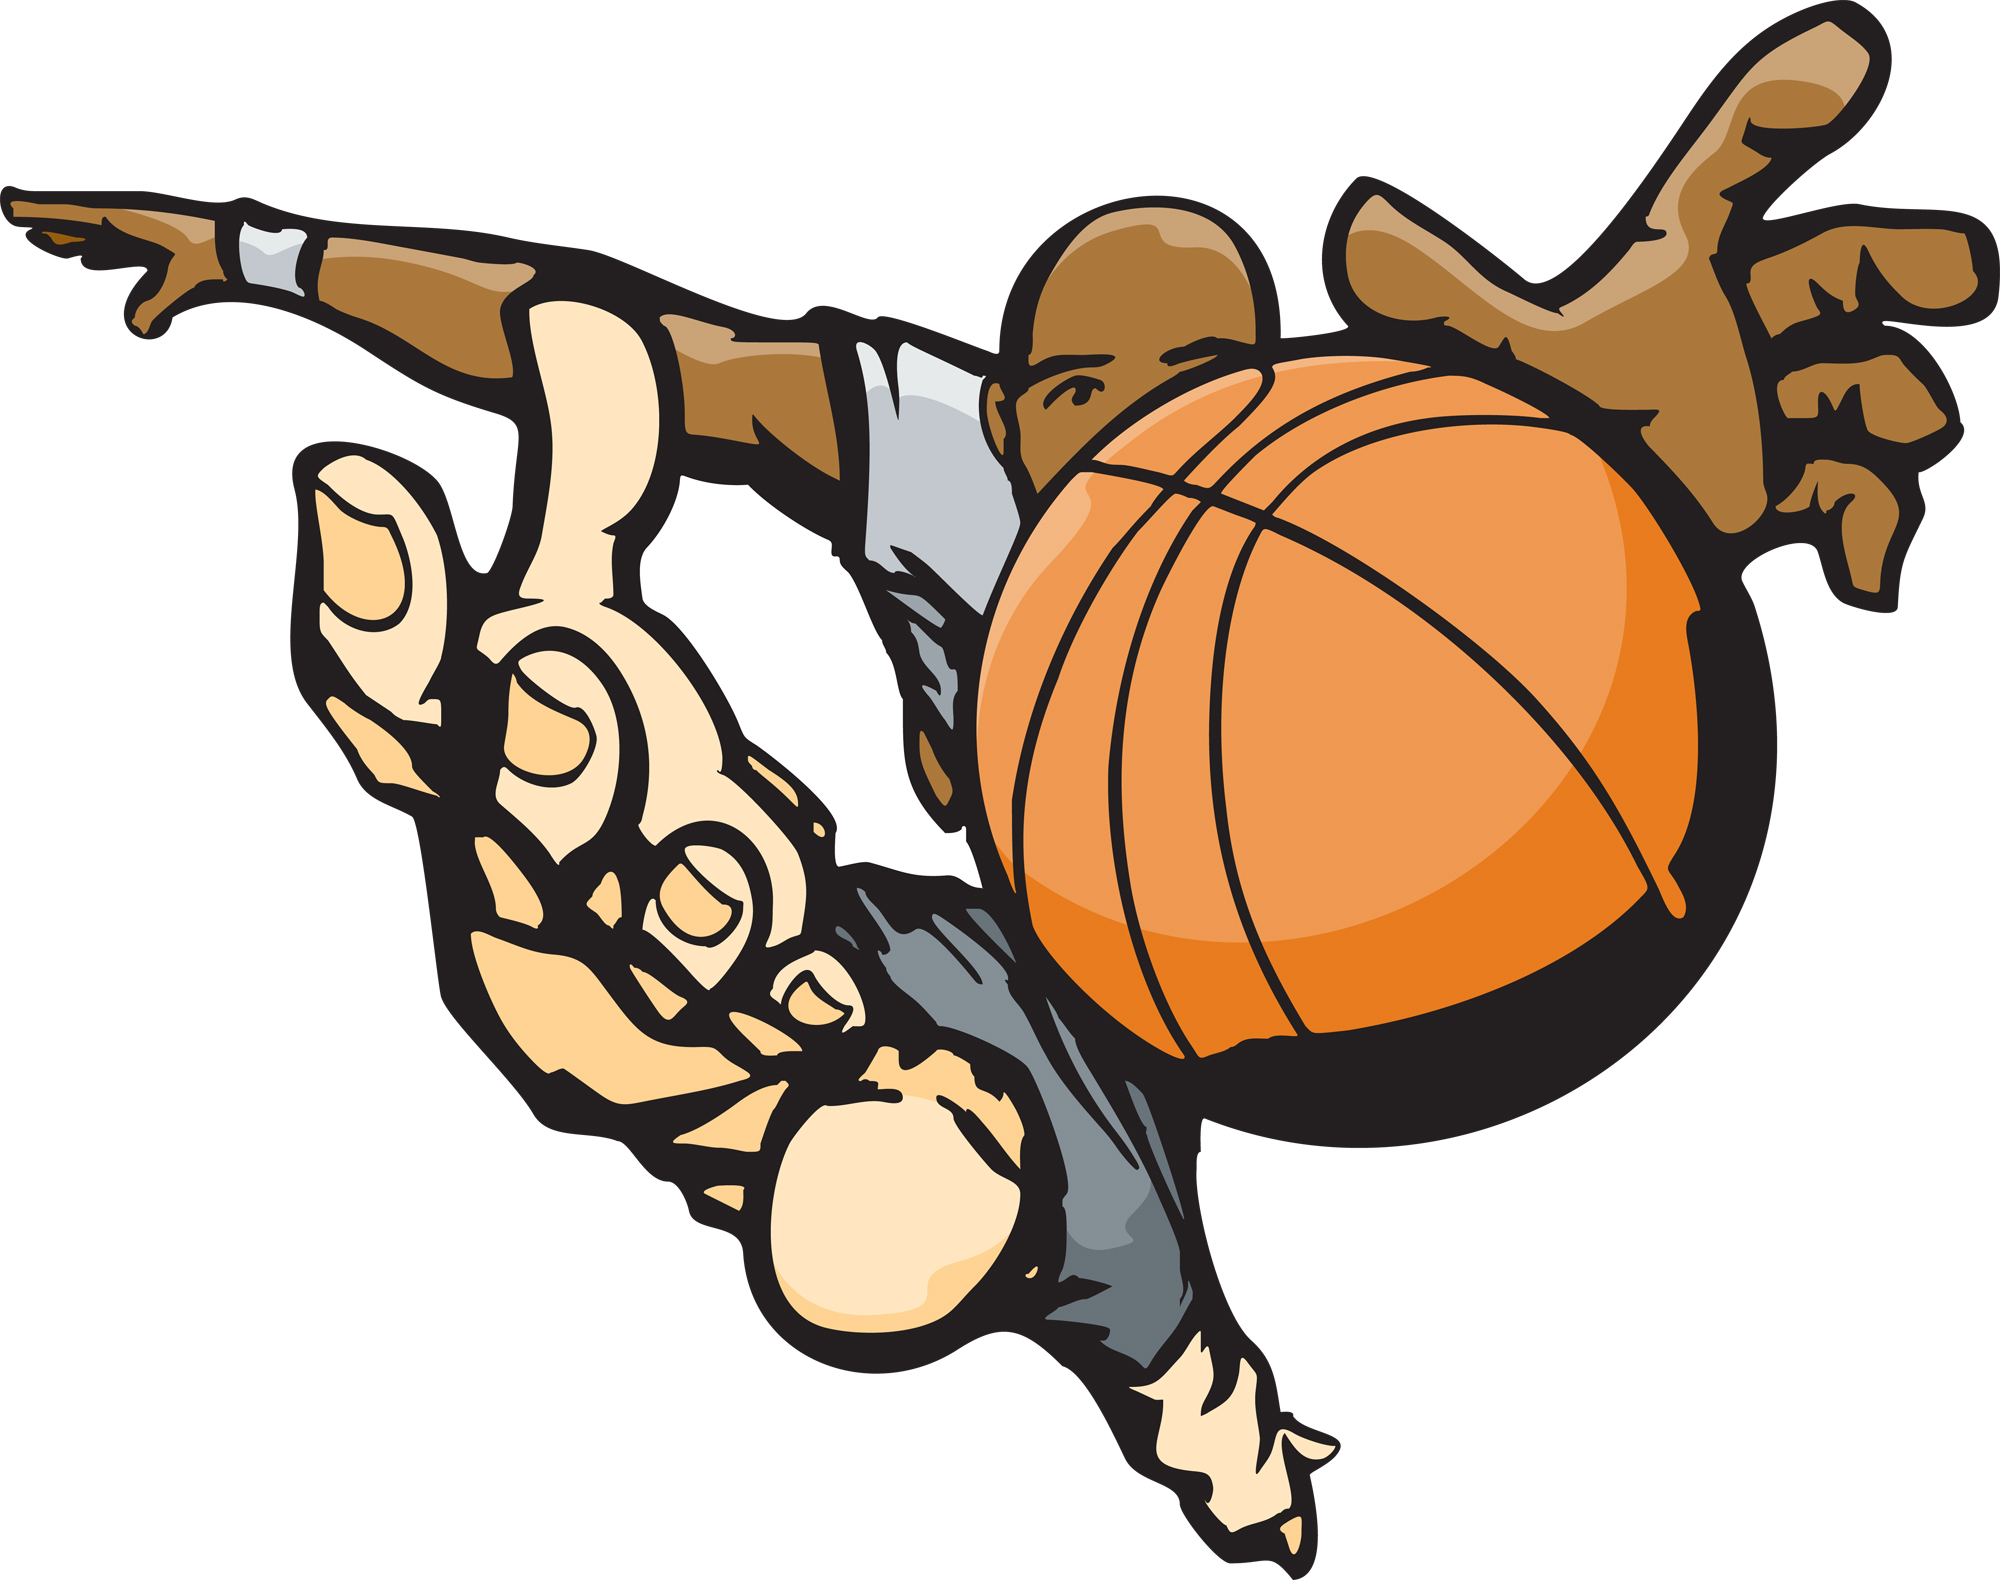 Clipart Basketball | Clipart Panda - Free Clipart Images